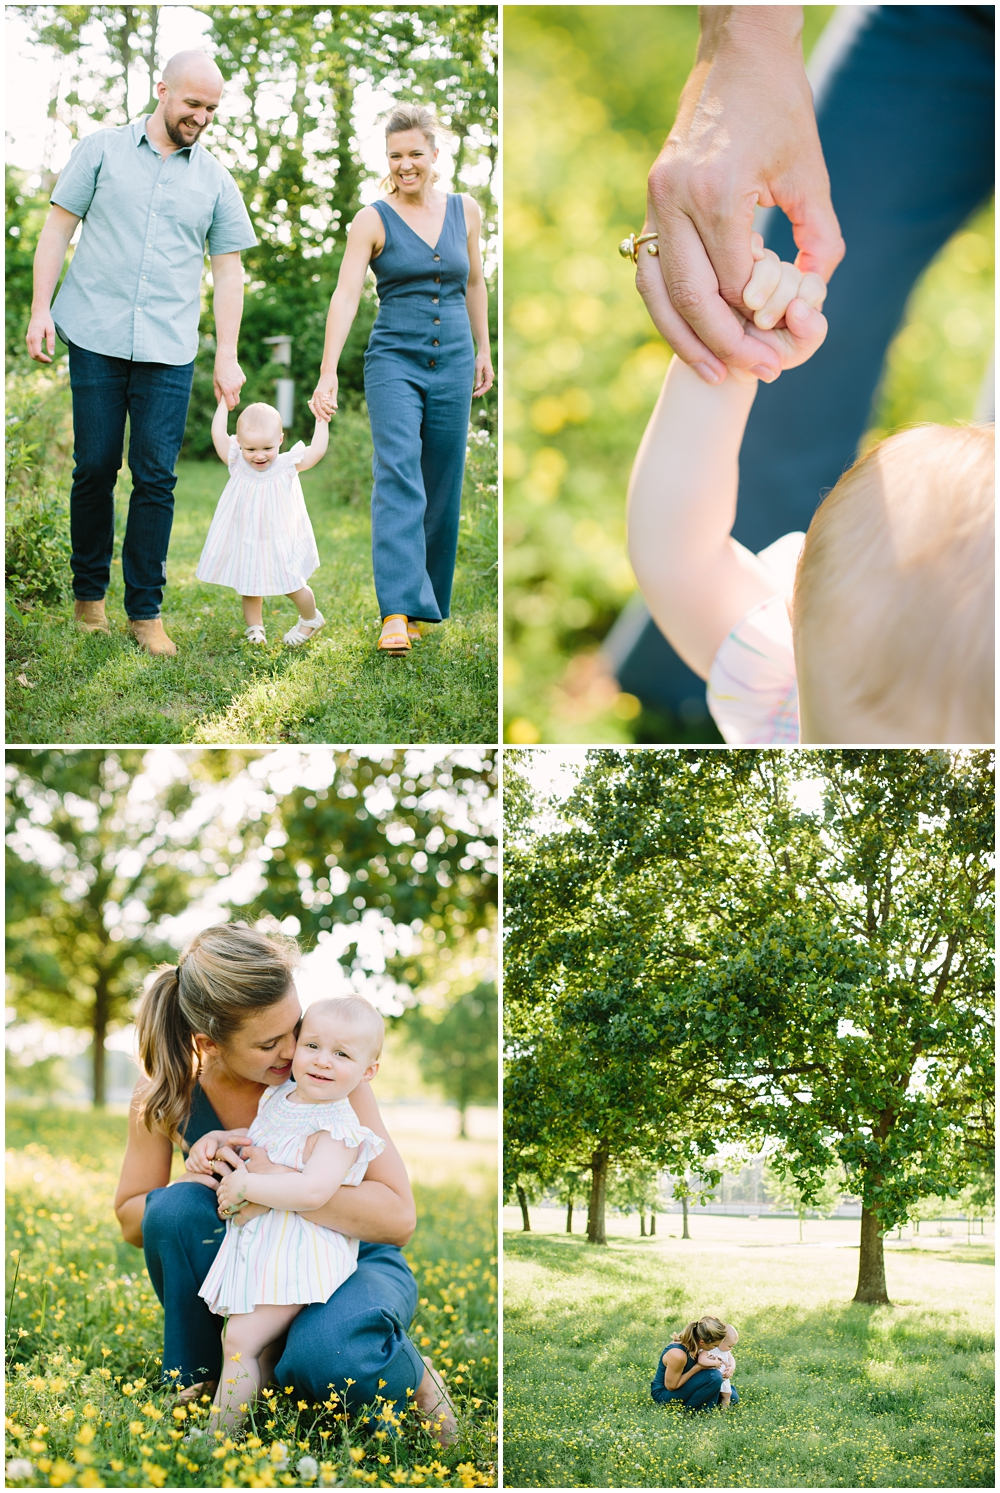 2019-08-09_0015.jpgNashville Family Lifestyle Photos Rachel Moore Photography